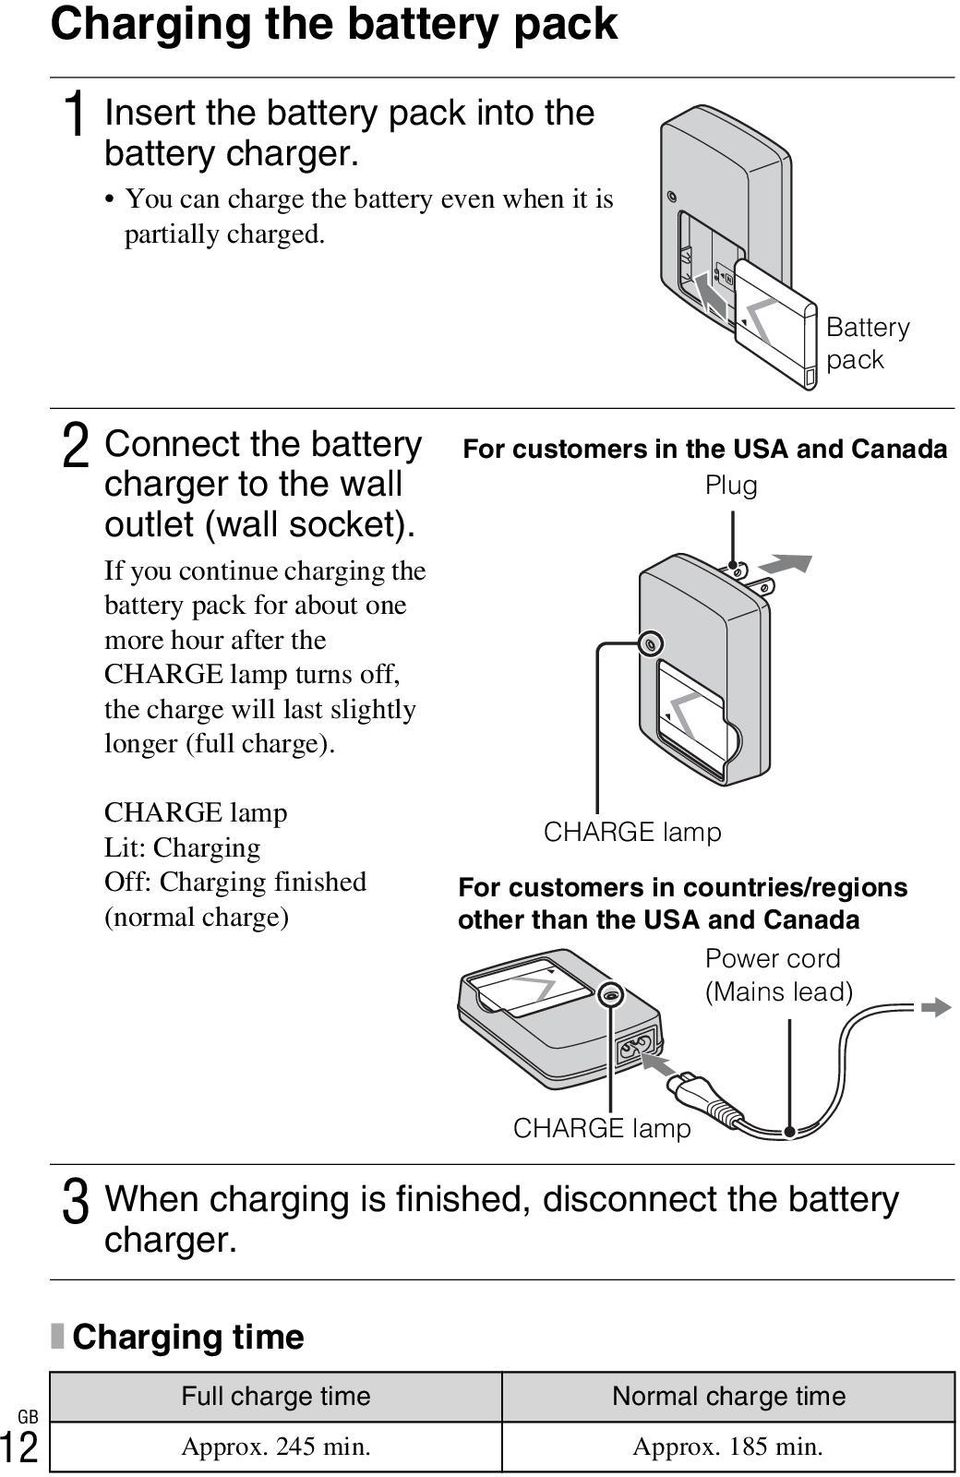 If you continue charging the battery pack for about one more hour after the CHARGE lamp turns off, the charge will last slightly longer (full charge).